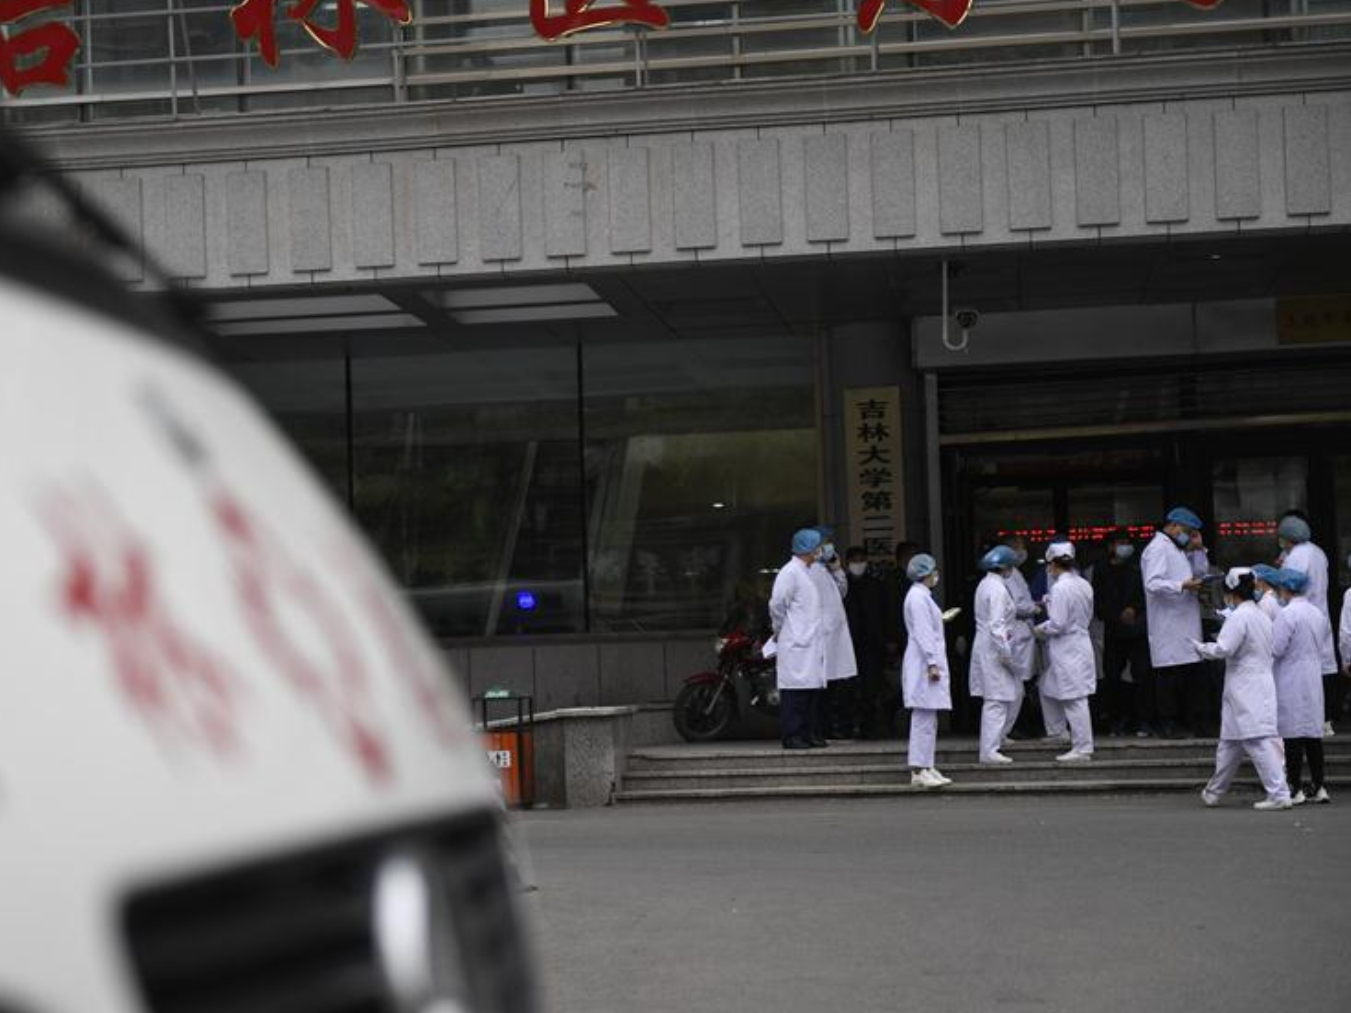 Plugging loopholes, Vice premier inspects Jilin's COVID-19 response